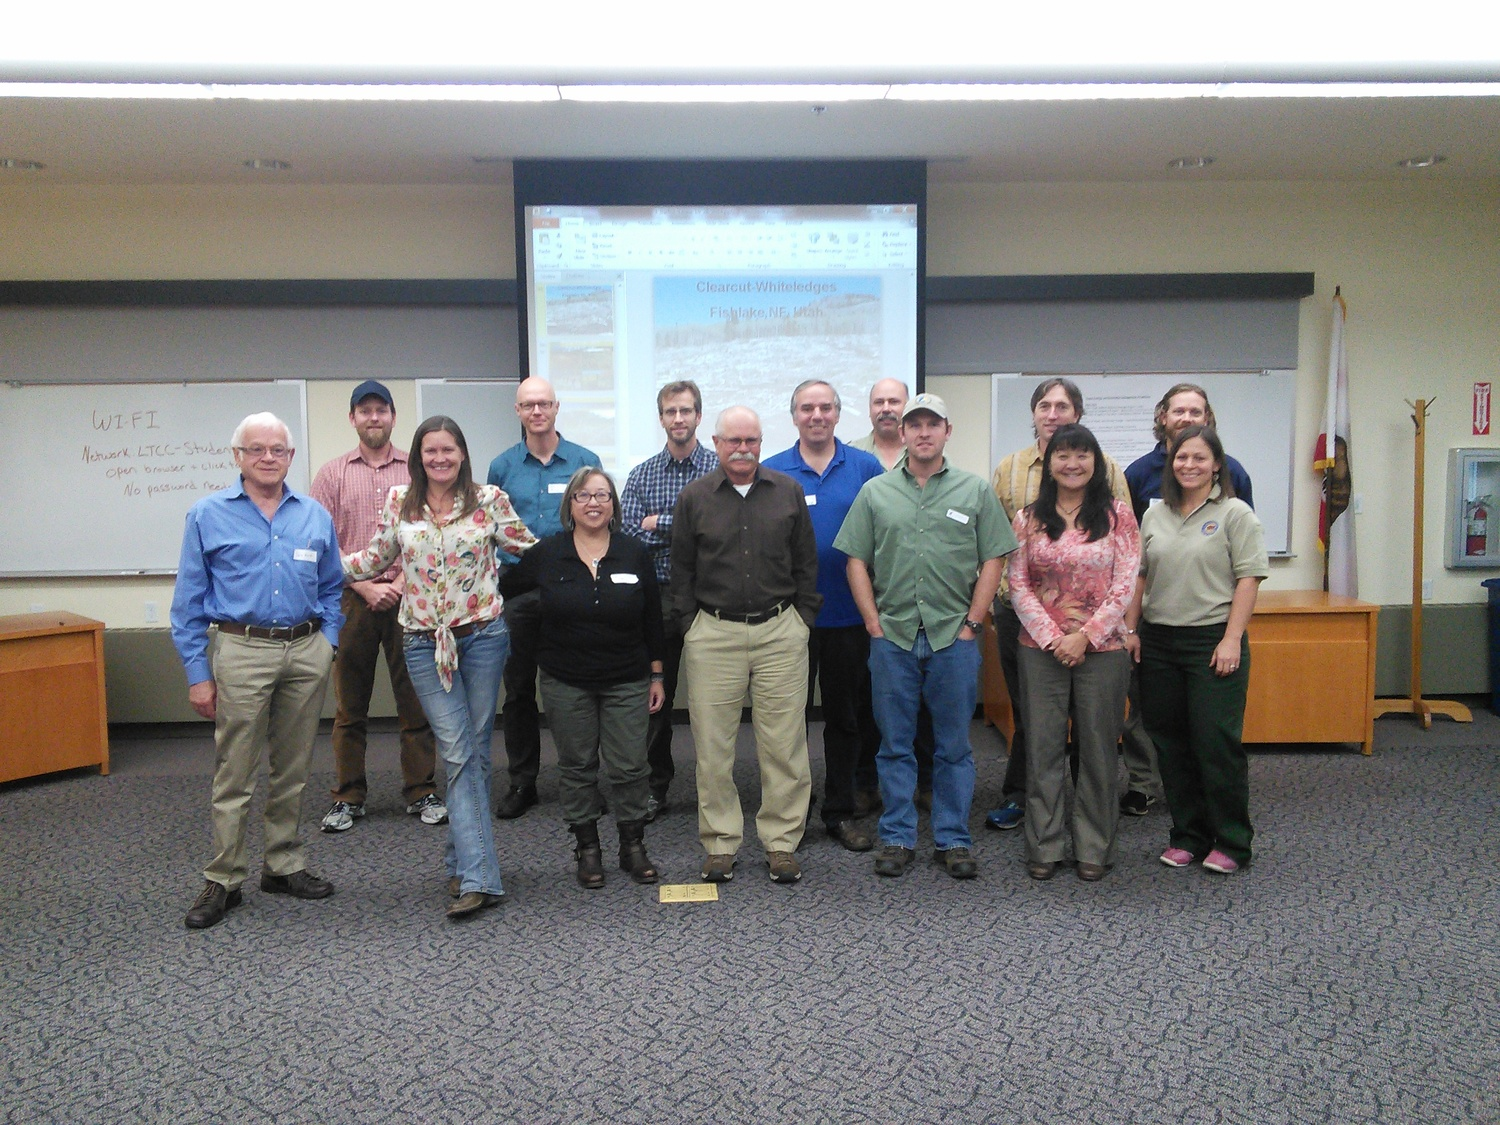 A special thanks to all of our presenters who traveled from near and far to share in this workshop